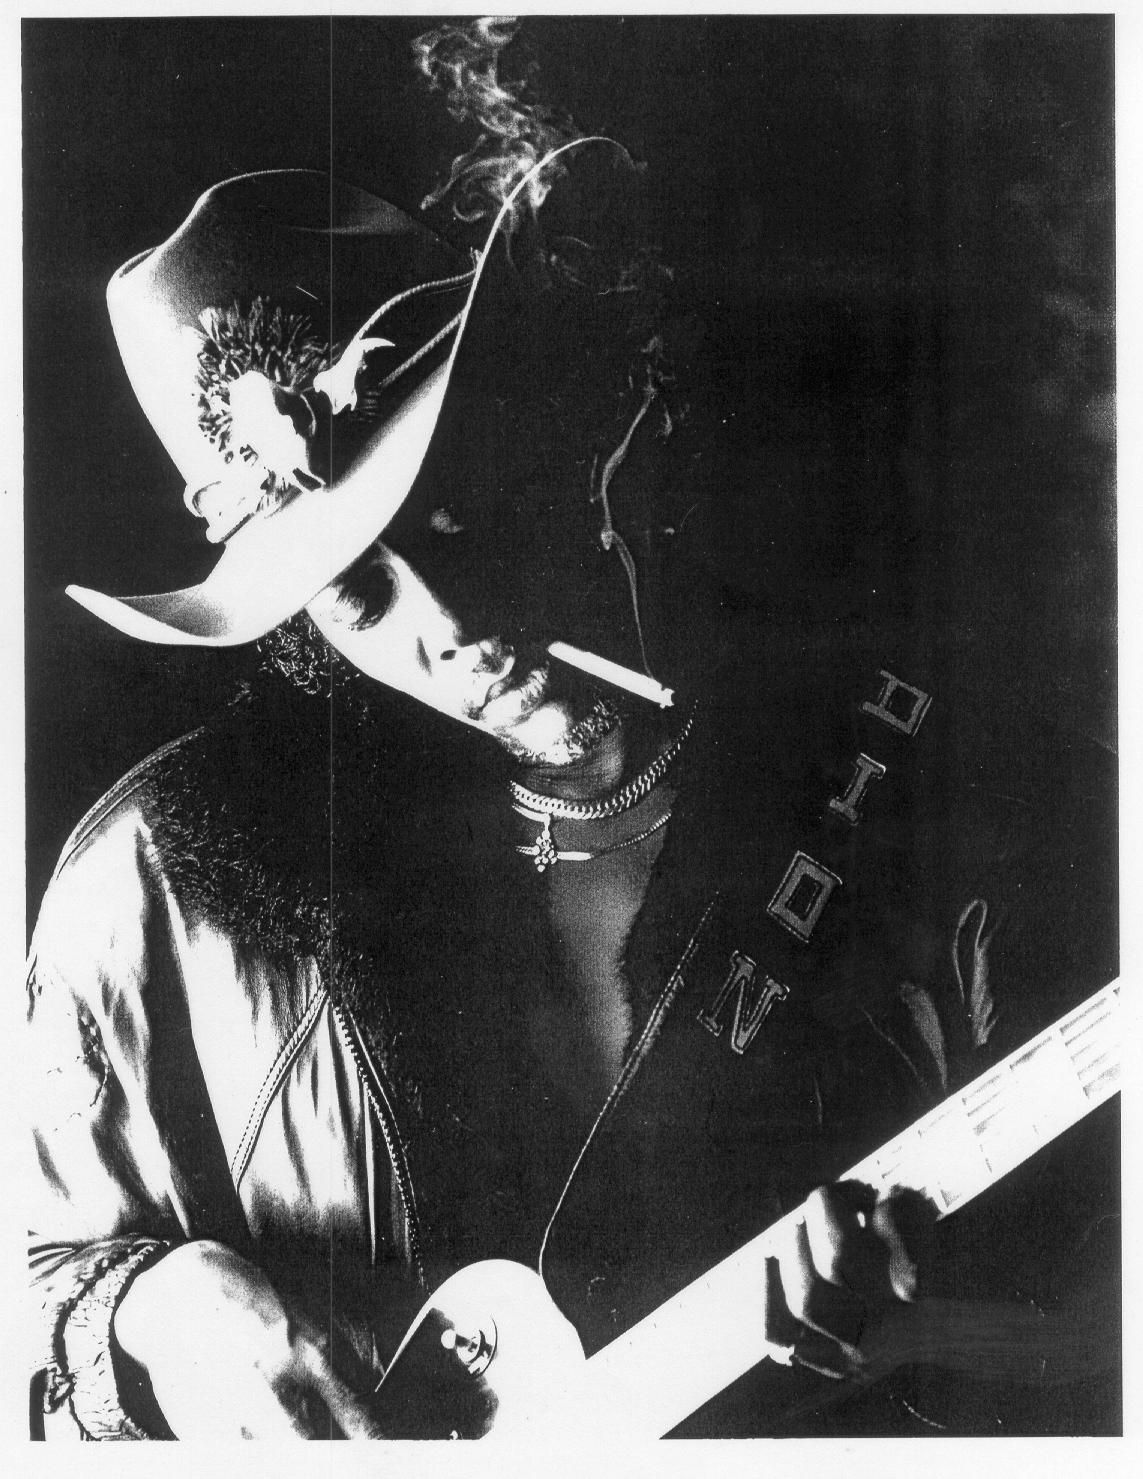 Blues guitarist Dion Payton in his trademark cowboy hat.